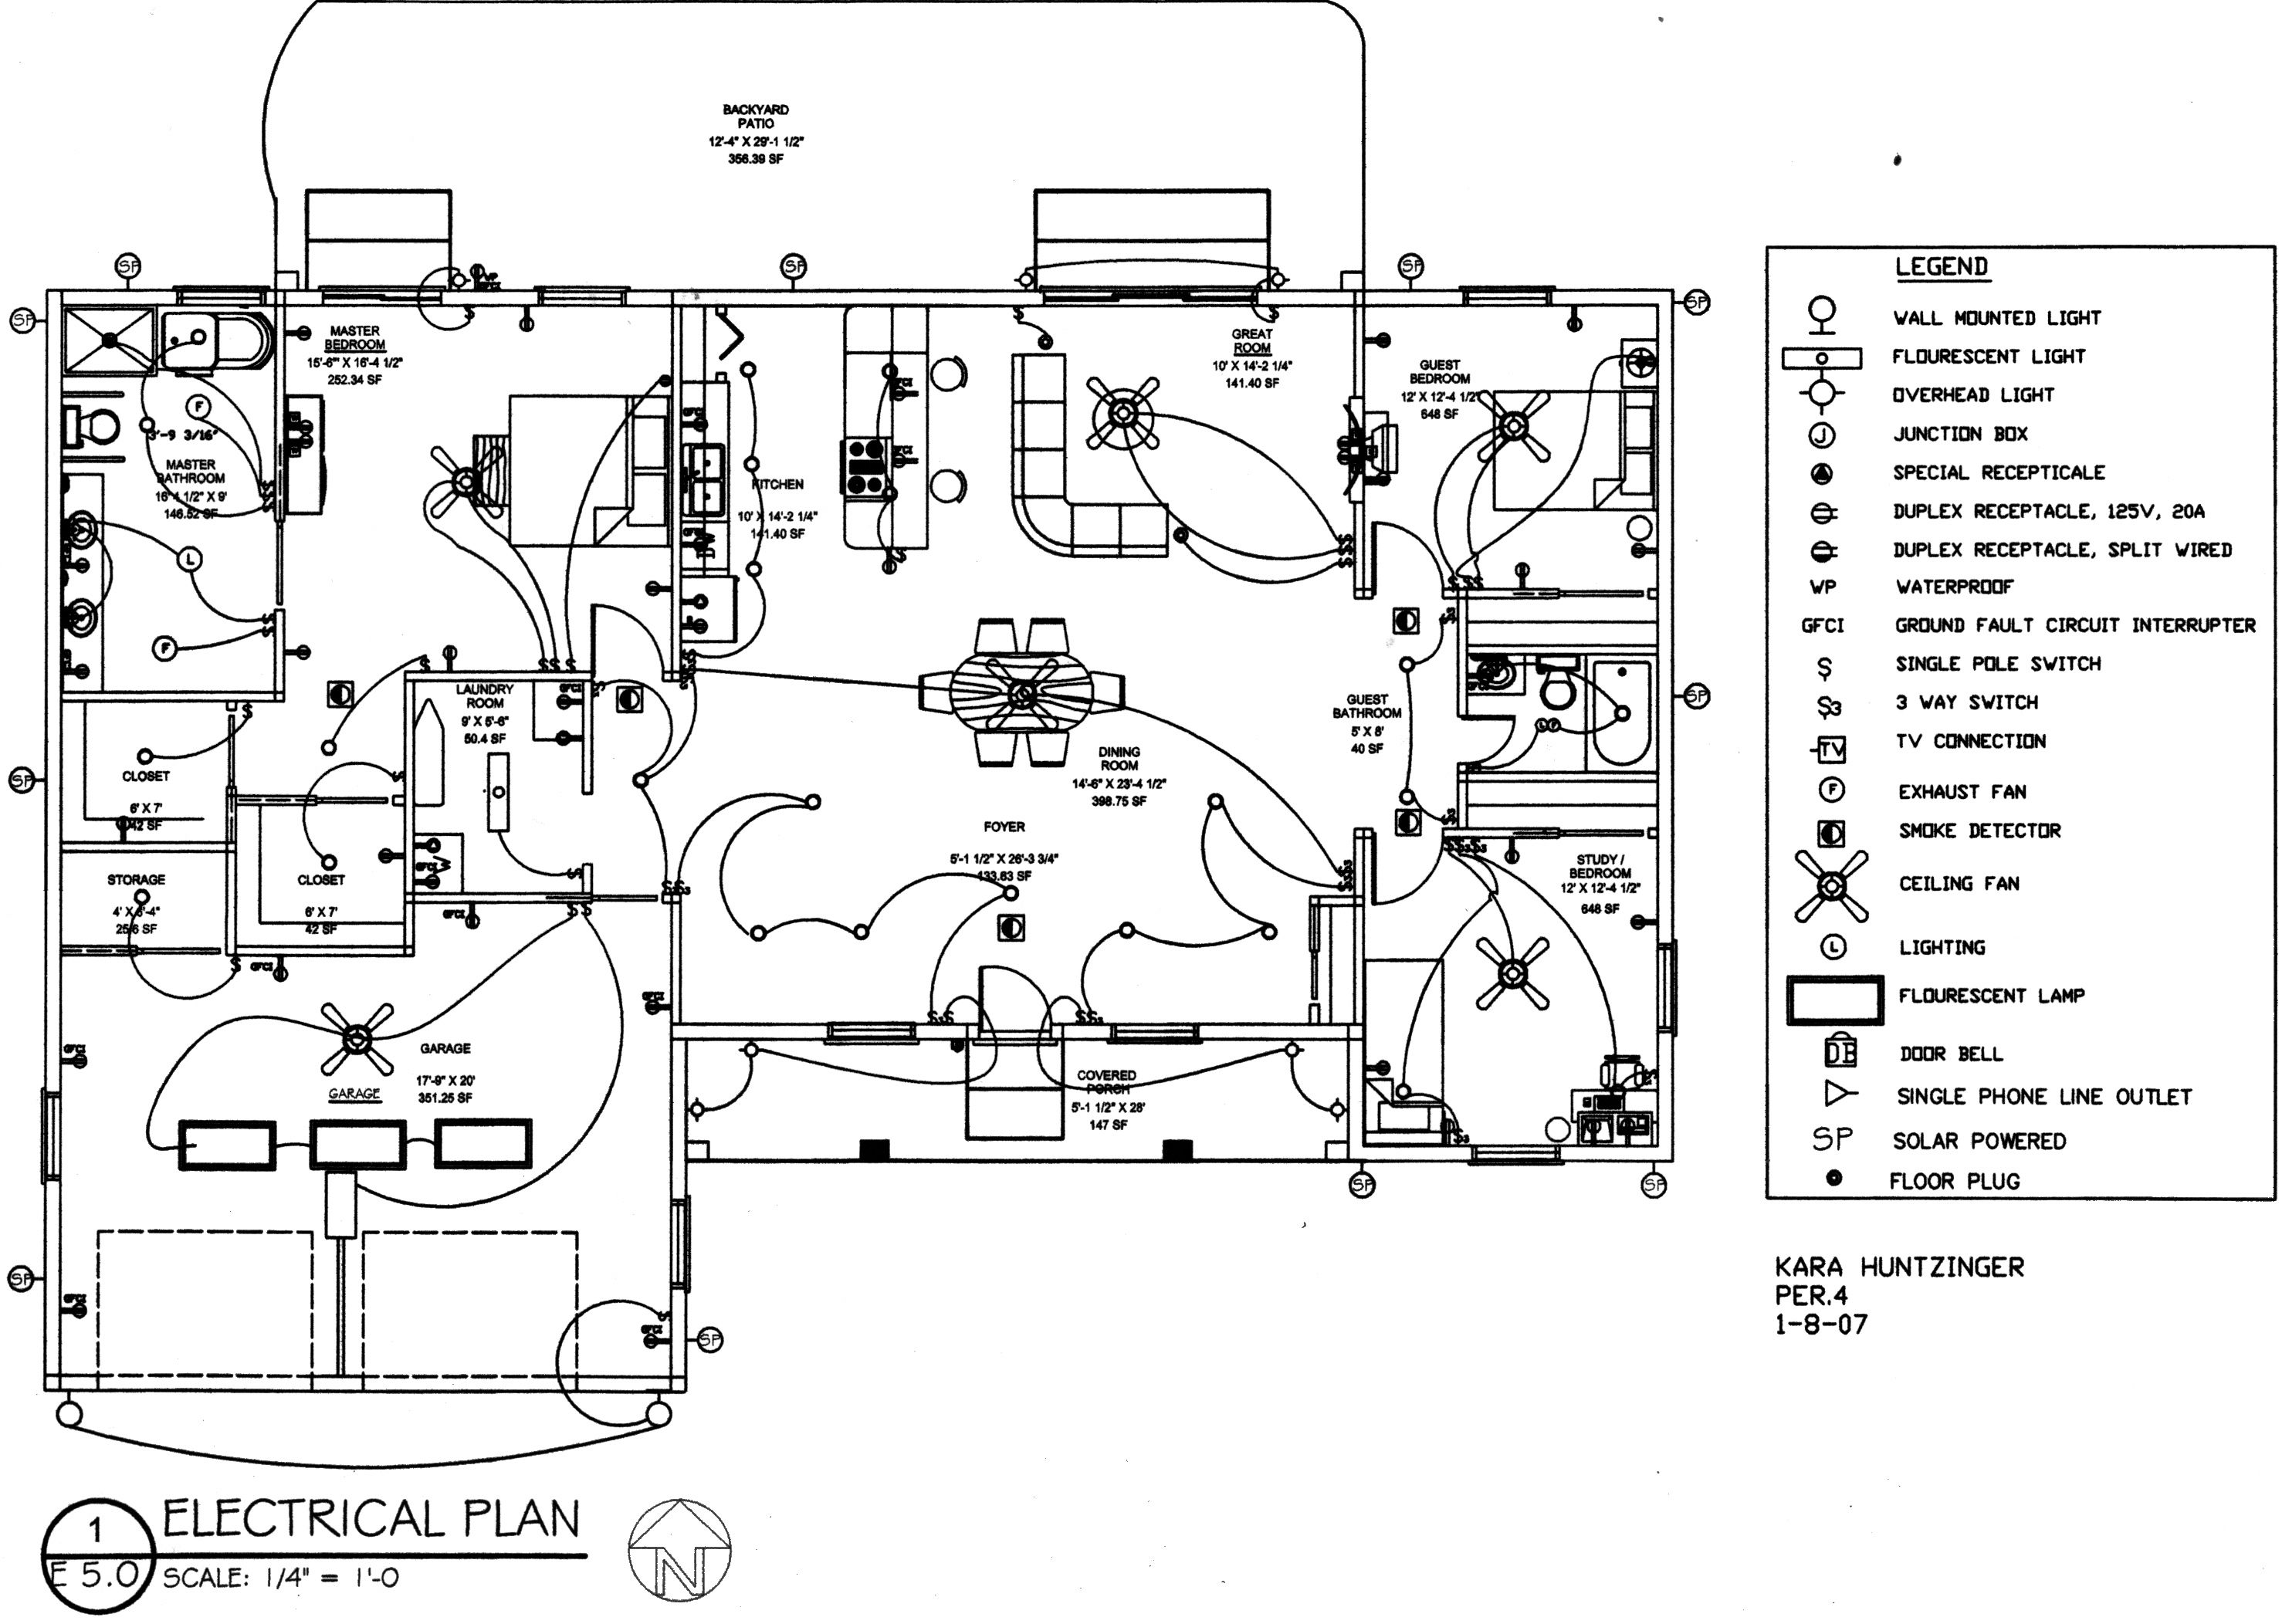 electrical plan house wiring library 3 bedroom 2 story house plans electrical plan 2 bedroom [ 2956 x 2104 Pixel ]